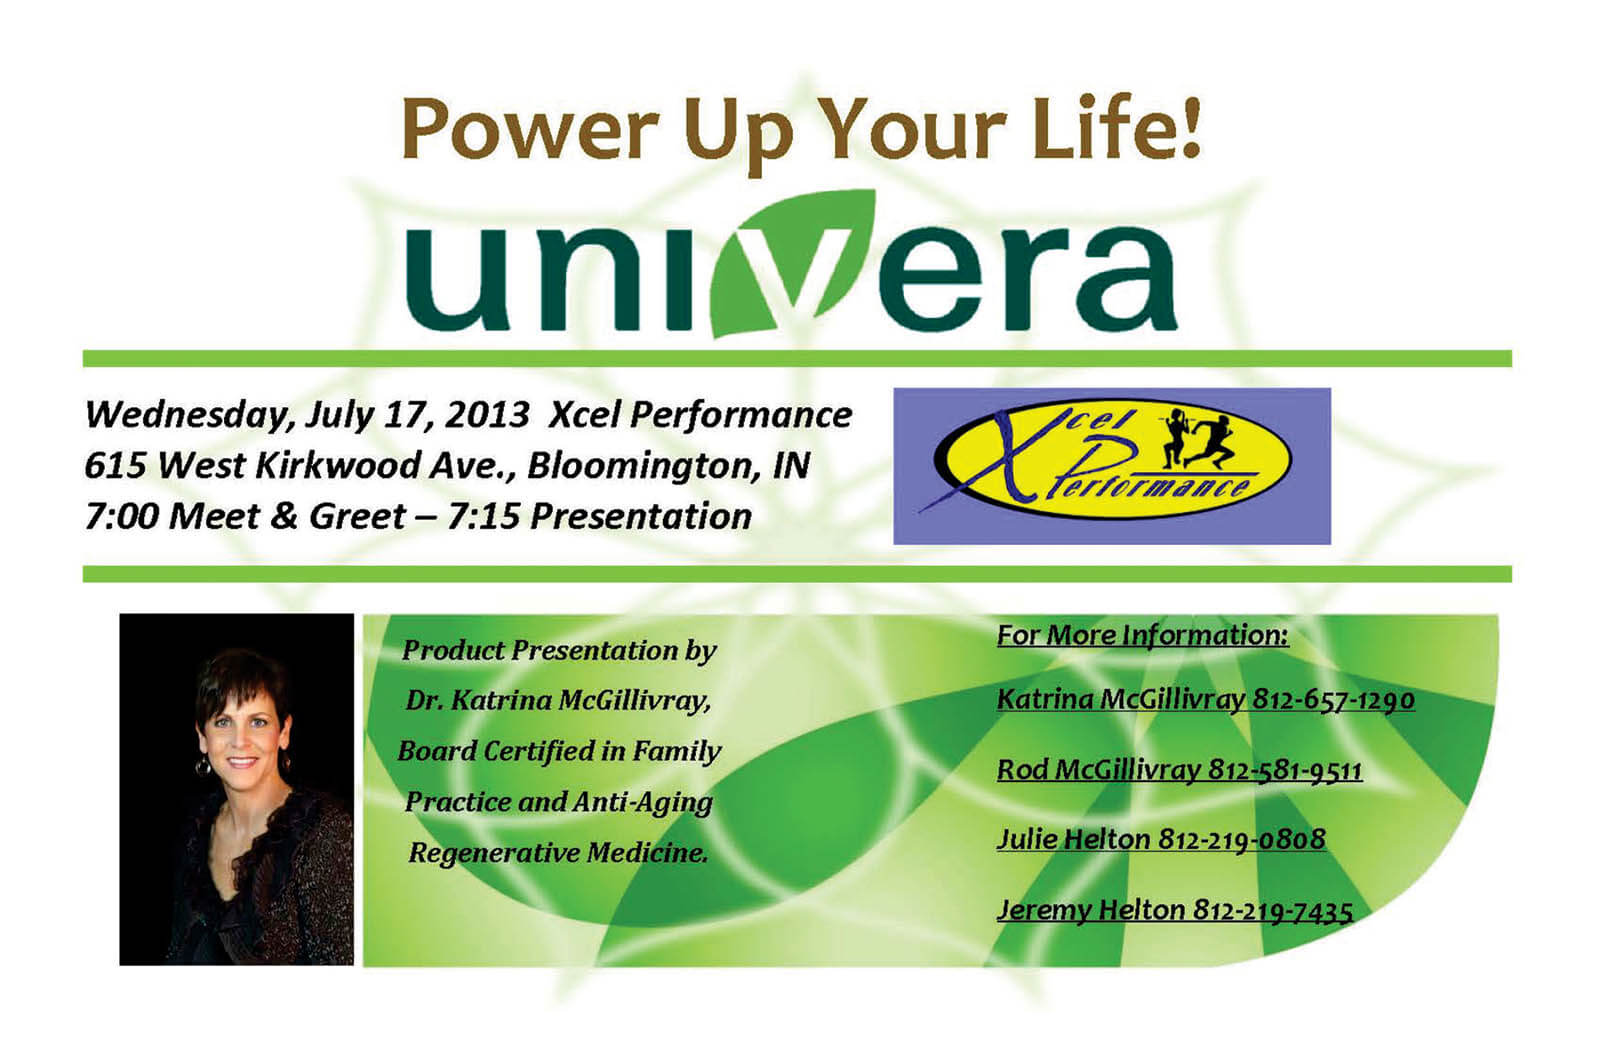 Power Up Your Life! flyer